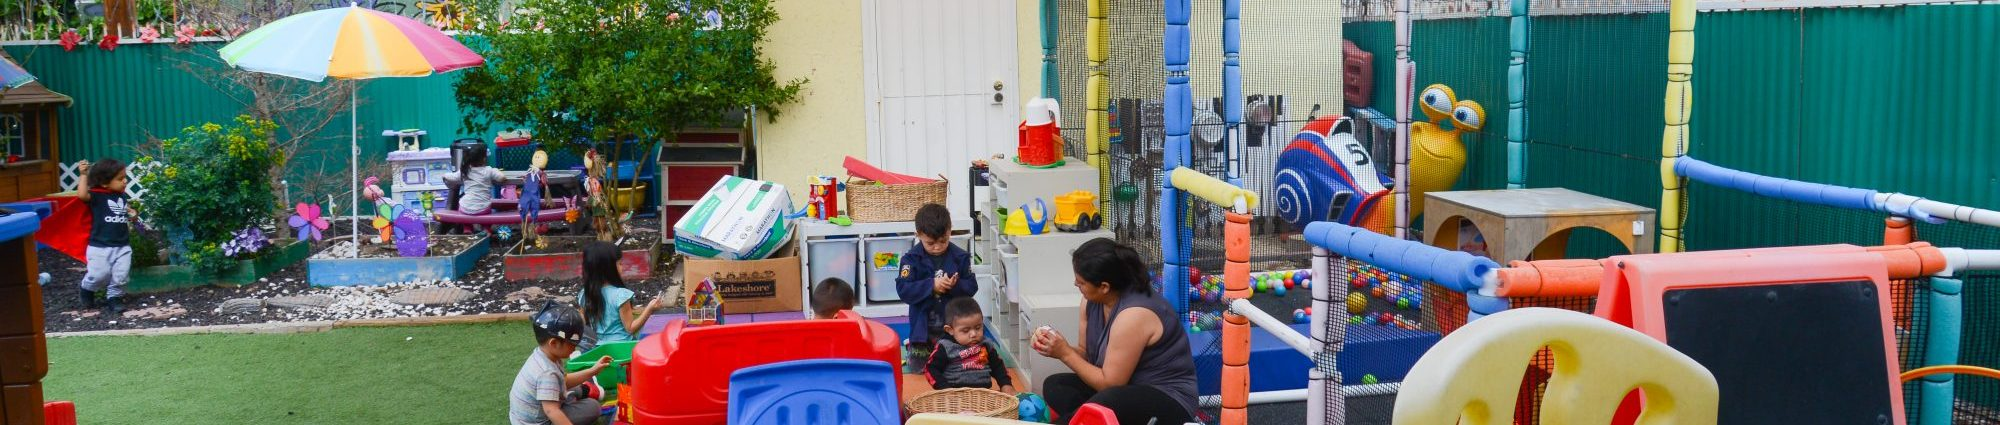 Los Angeles County family child care